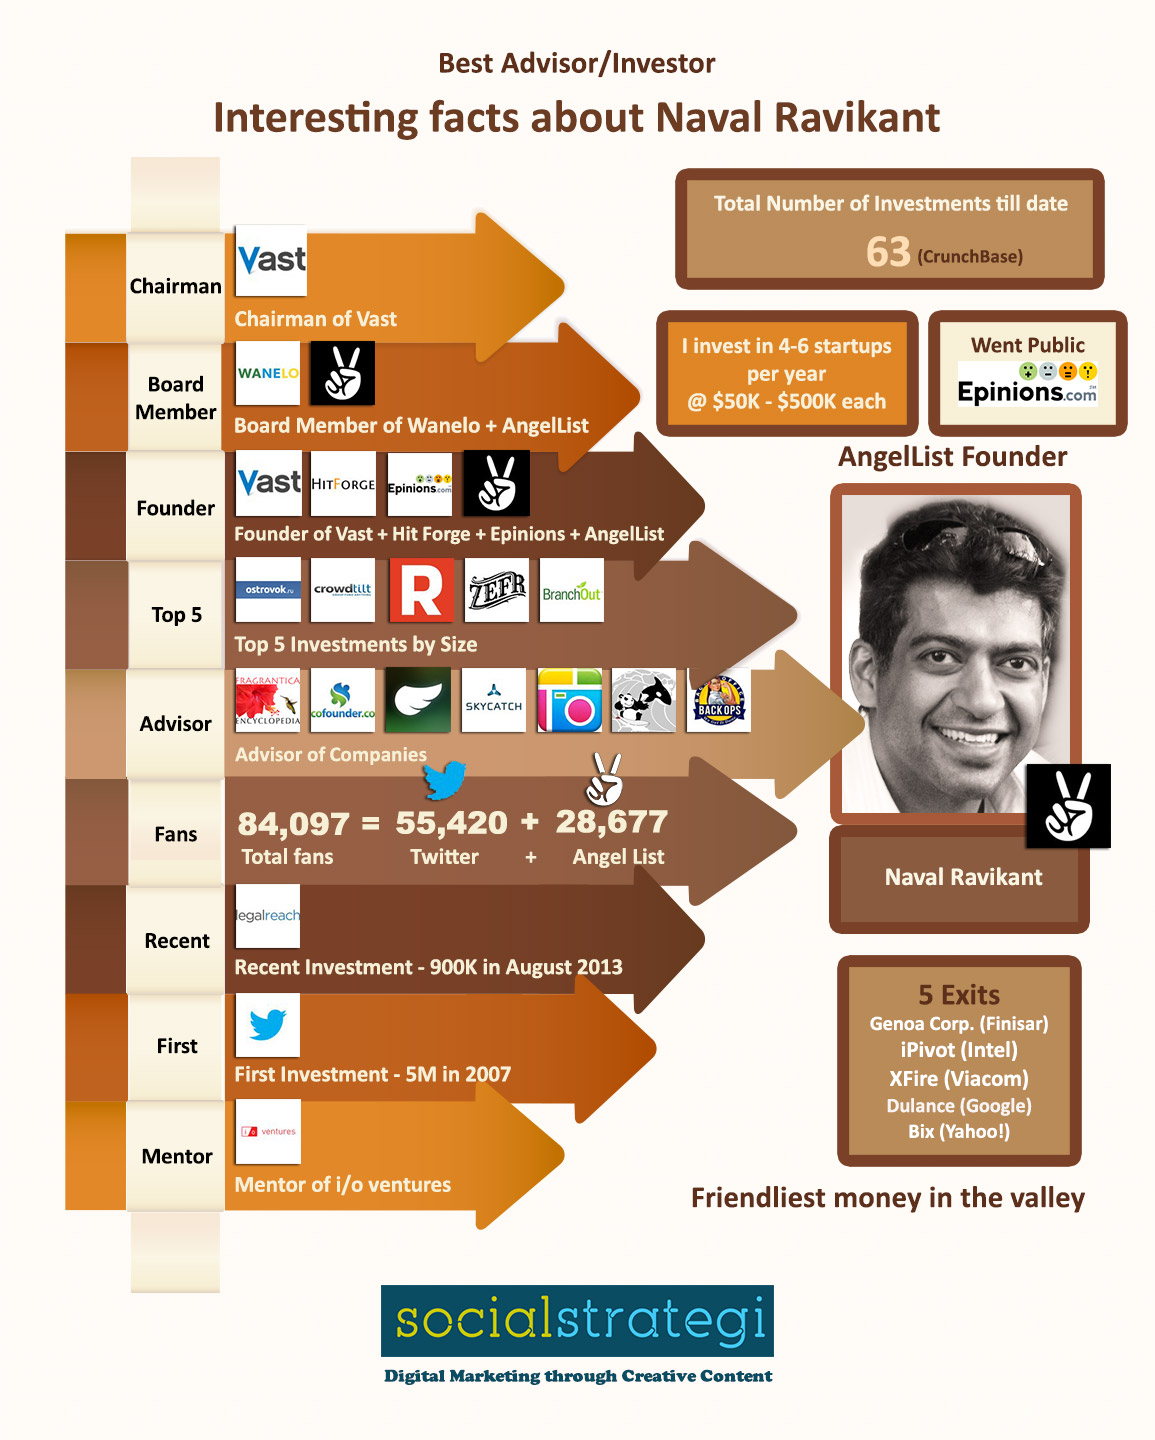 the-friendliest-money-in-the-valley-naval-ravikant_521505252287a